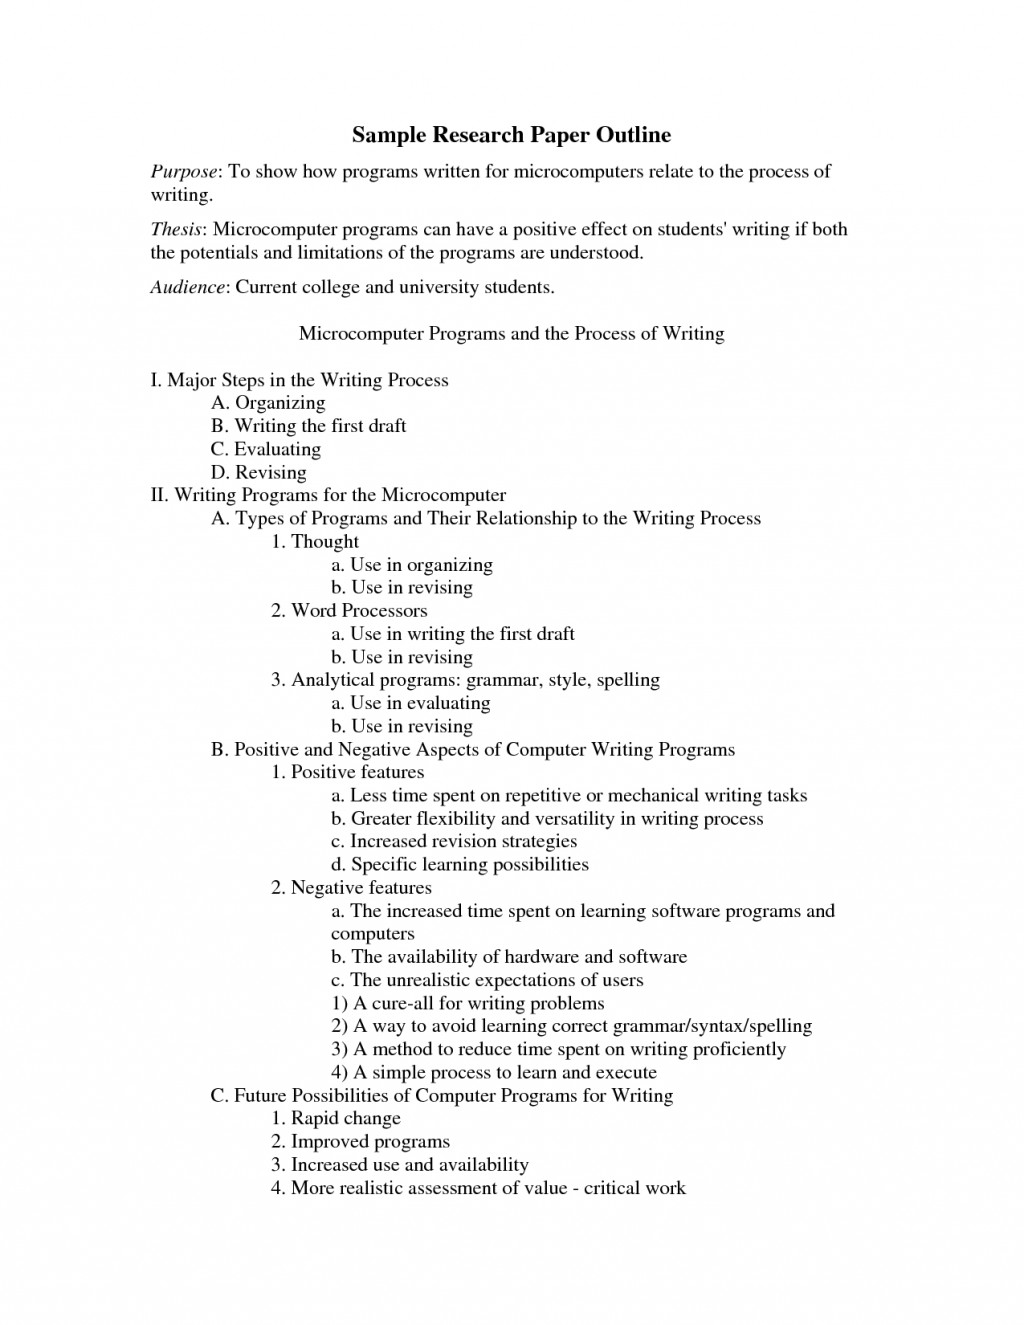 008 Research Paper Example Of Good Outline College Format Gosu Talentrank Co With Regard To Unique A Apa History Large